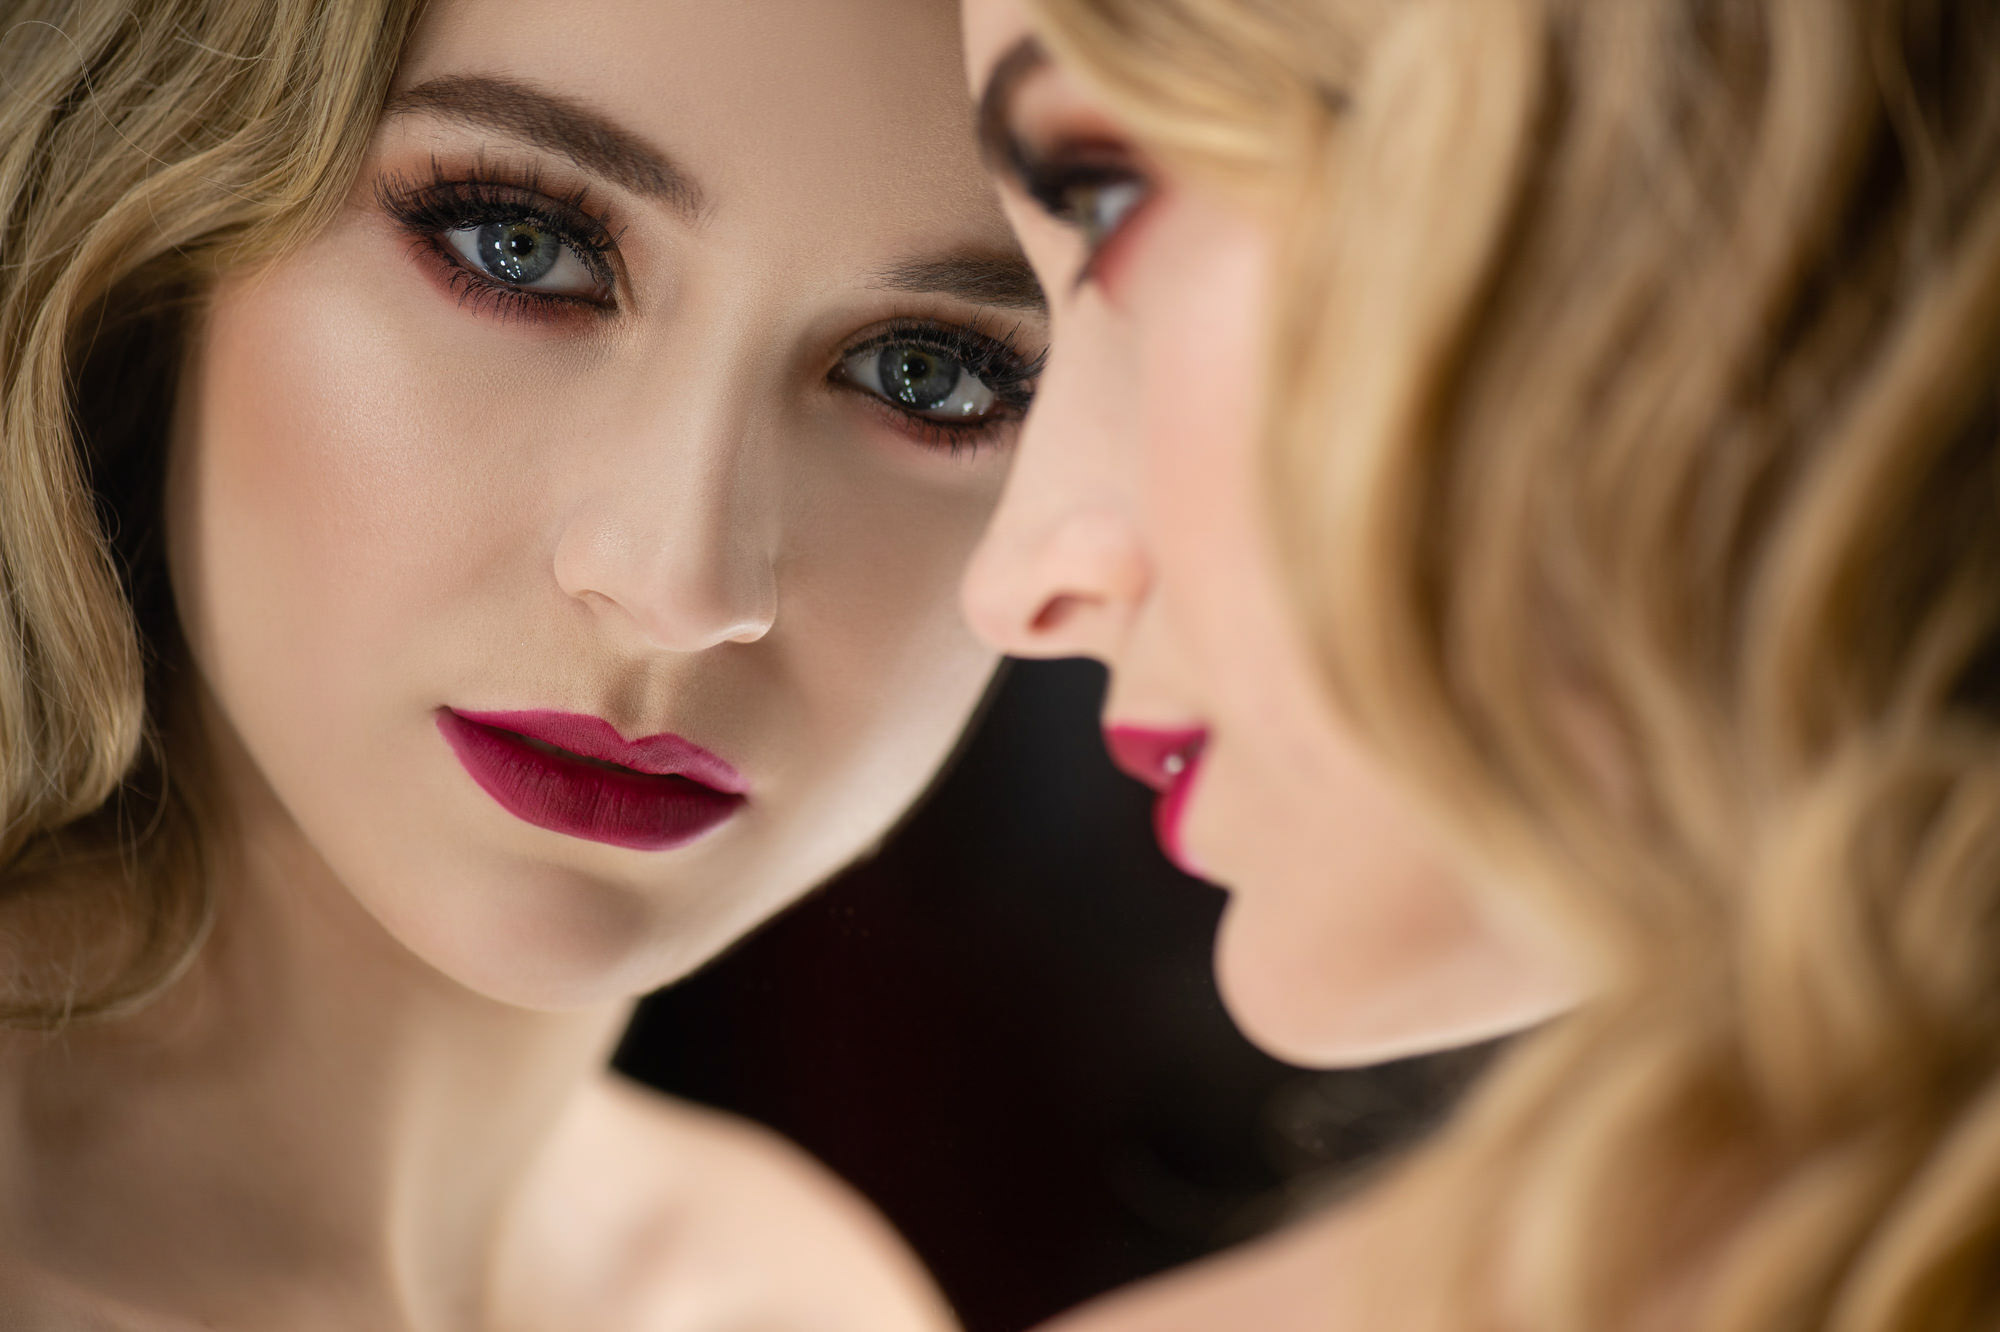 Dramatic bridal makeup - red lips and smoky eyes - photo by Jerry Ghionis luxury wedding photographer